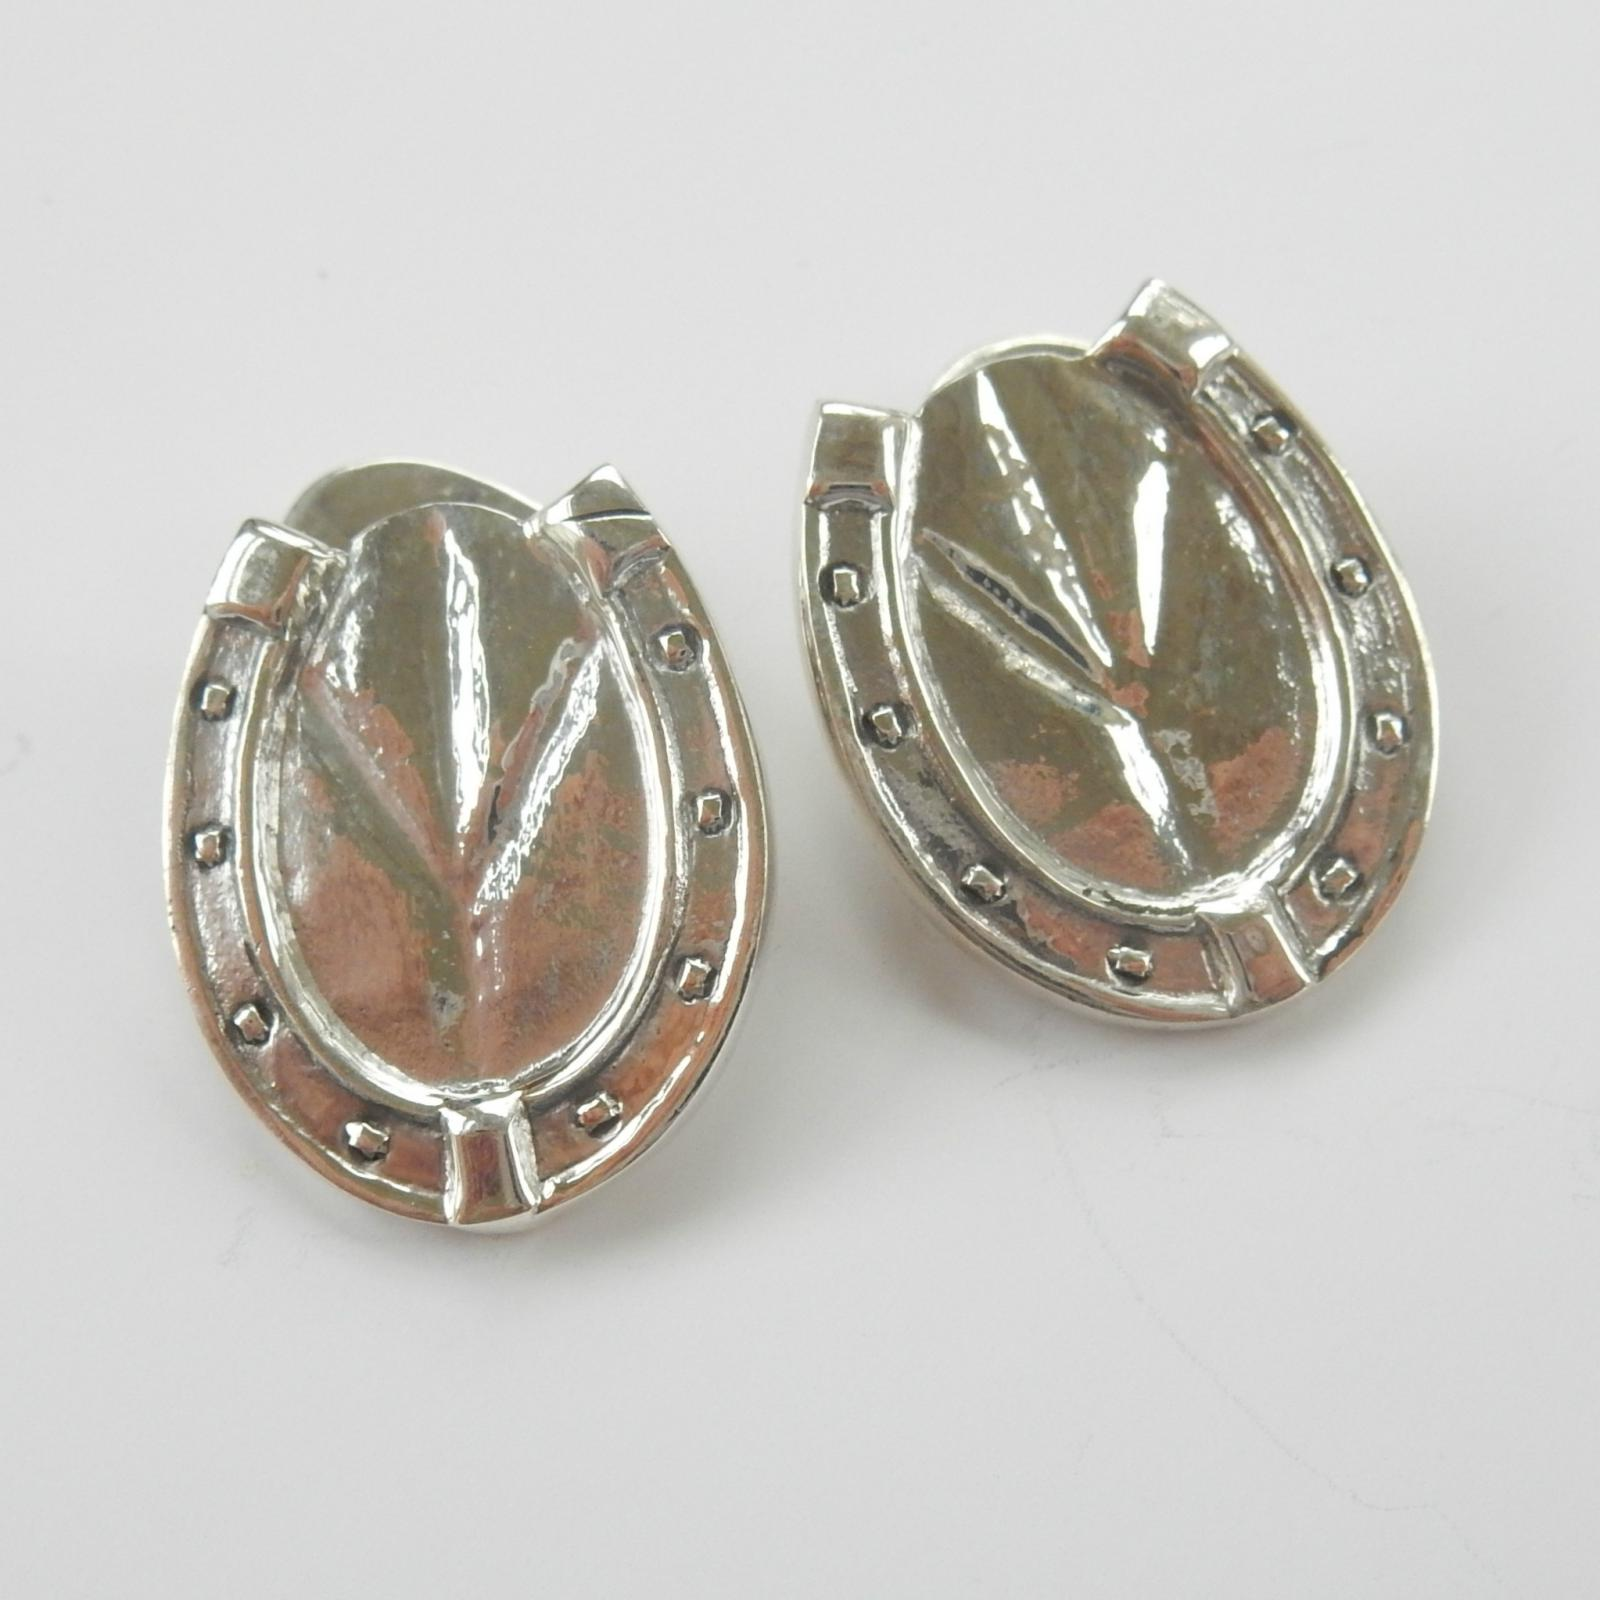 Photo of Sterling Silver Novelty Horse Shoe Cufflinks